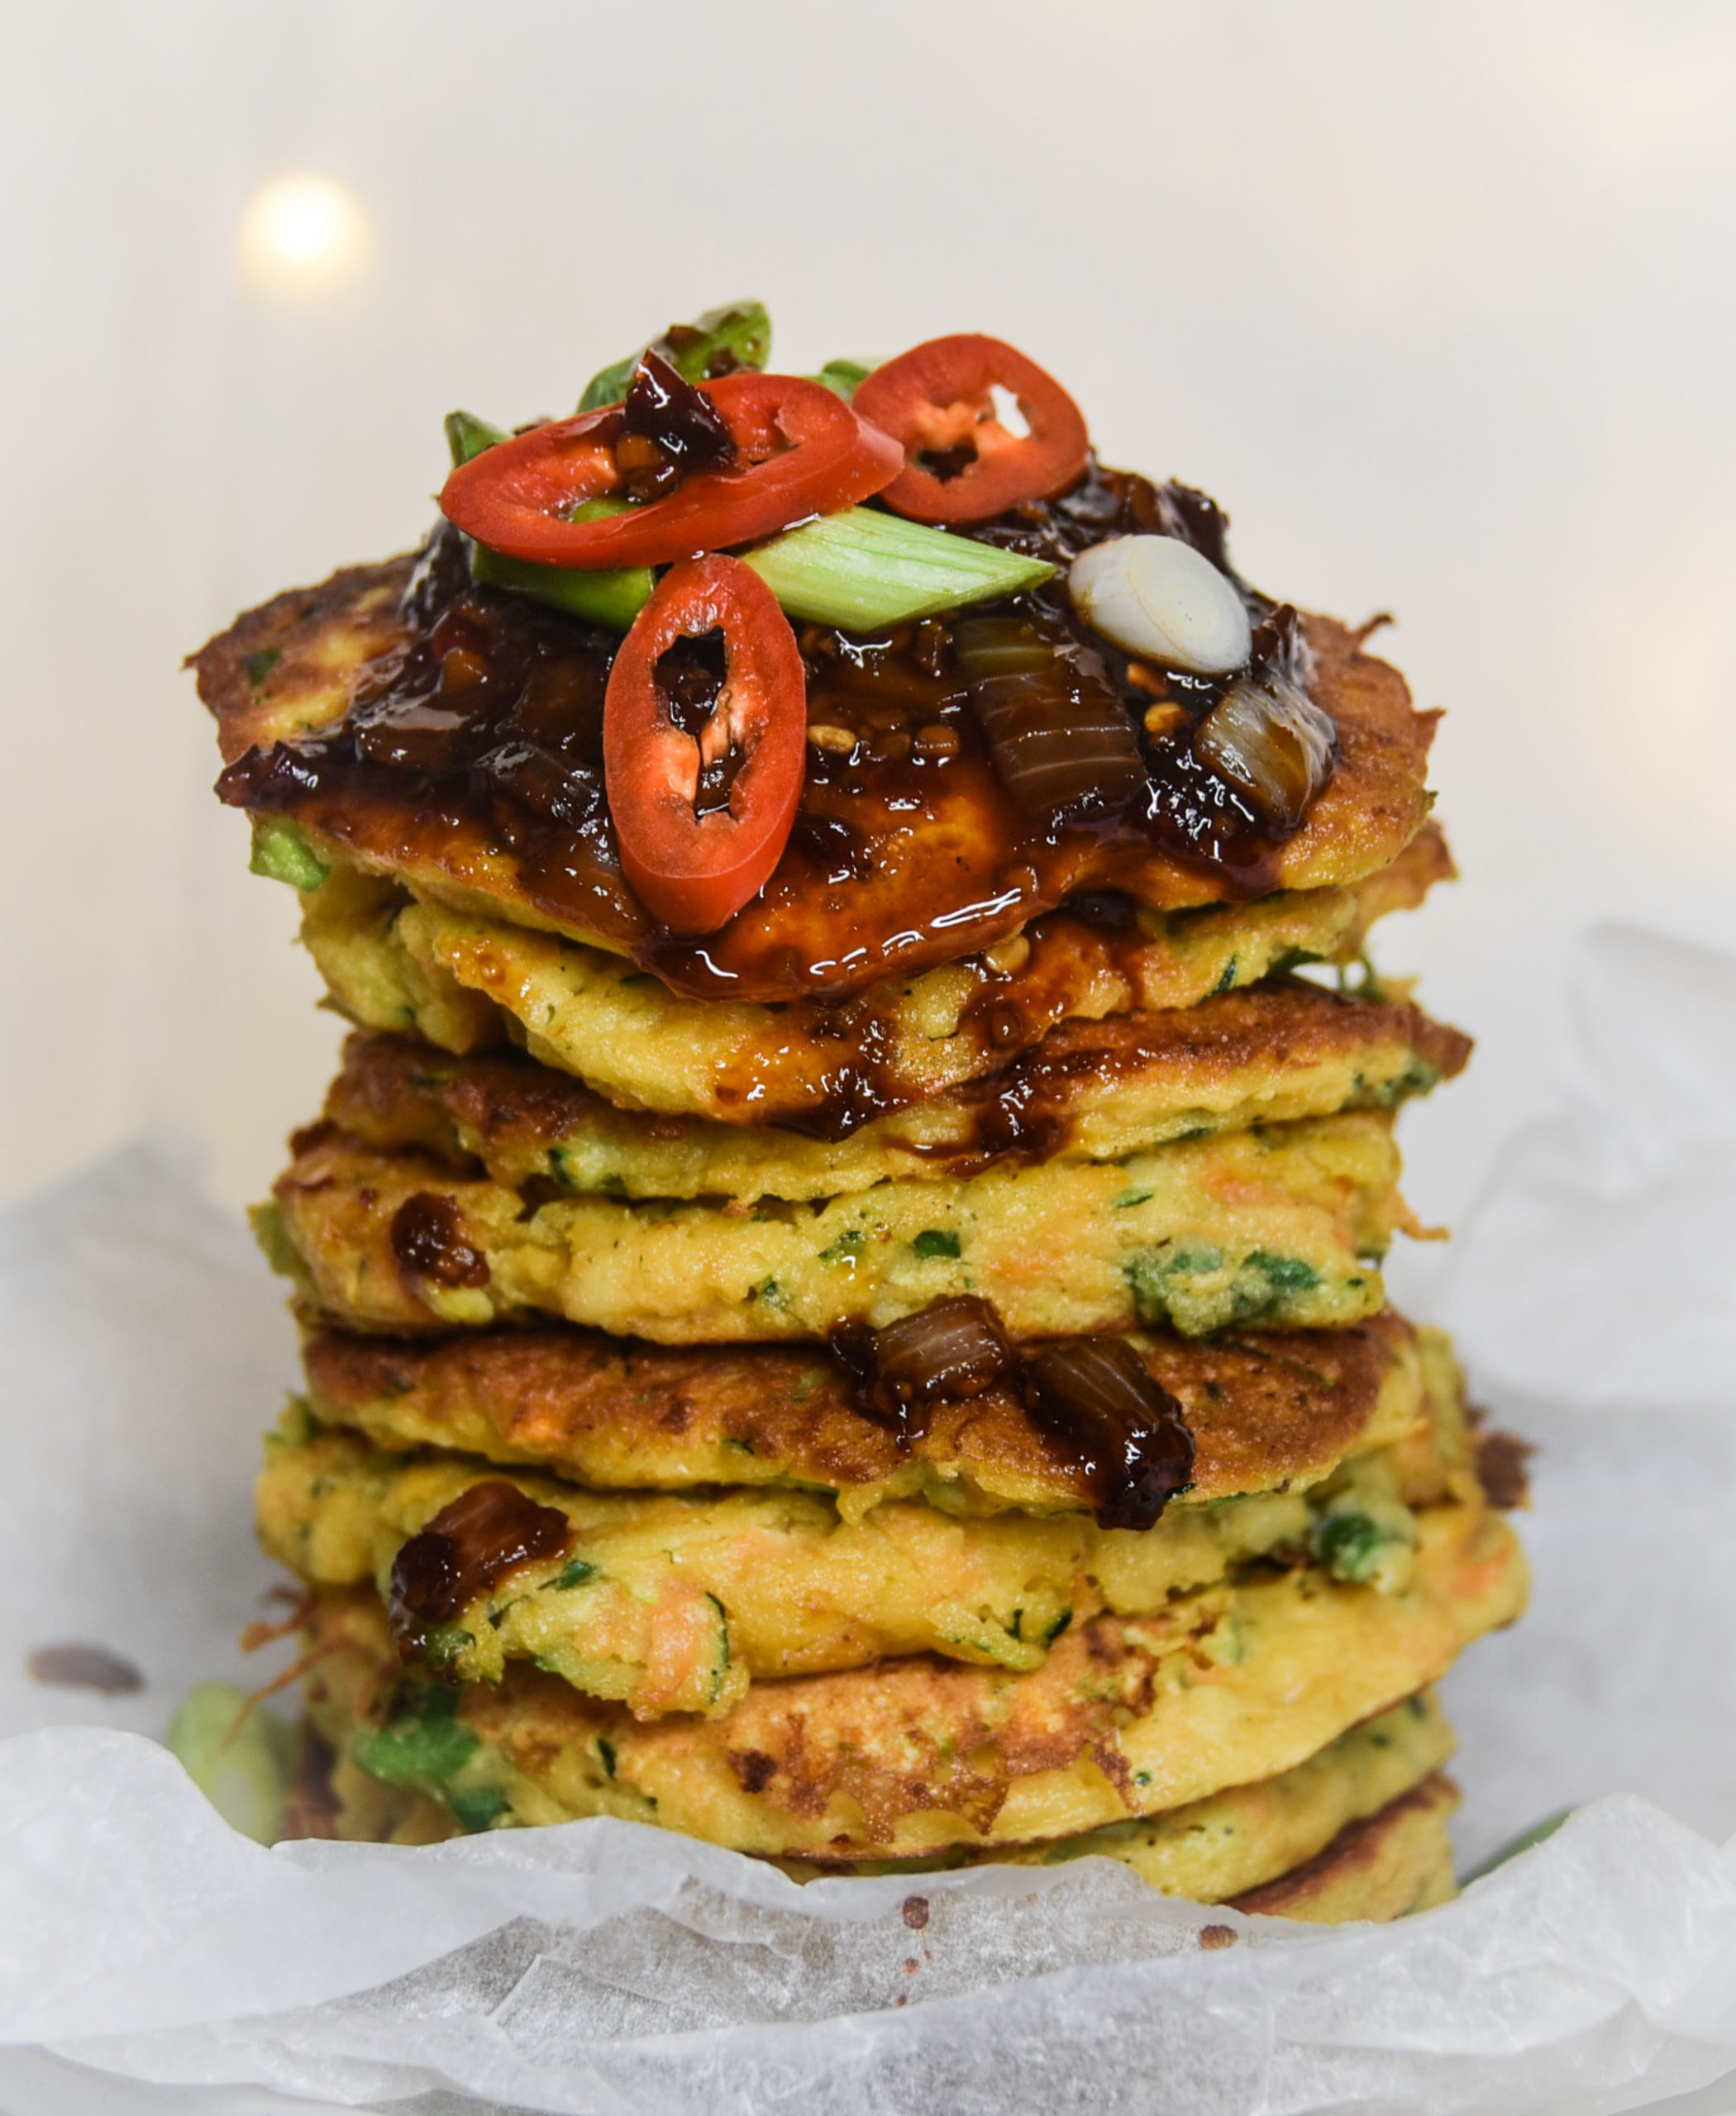 Picture of a stack of vegetable fritters with chilli jam and chillis on top